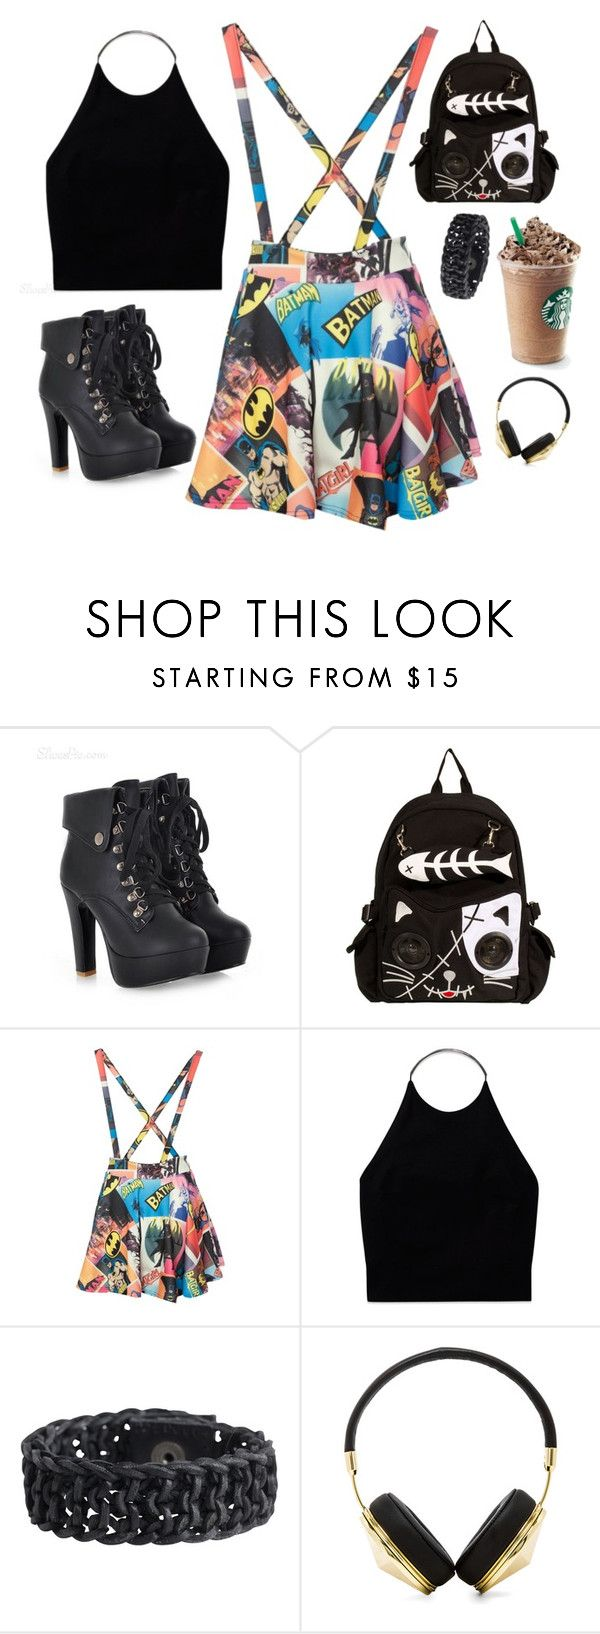 """Untitled #5"" by becomeyou ❤ liked on Polyvore featuring Wilfred, Pieces and Frends"